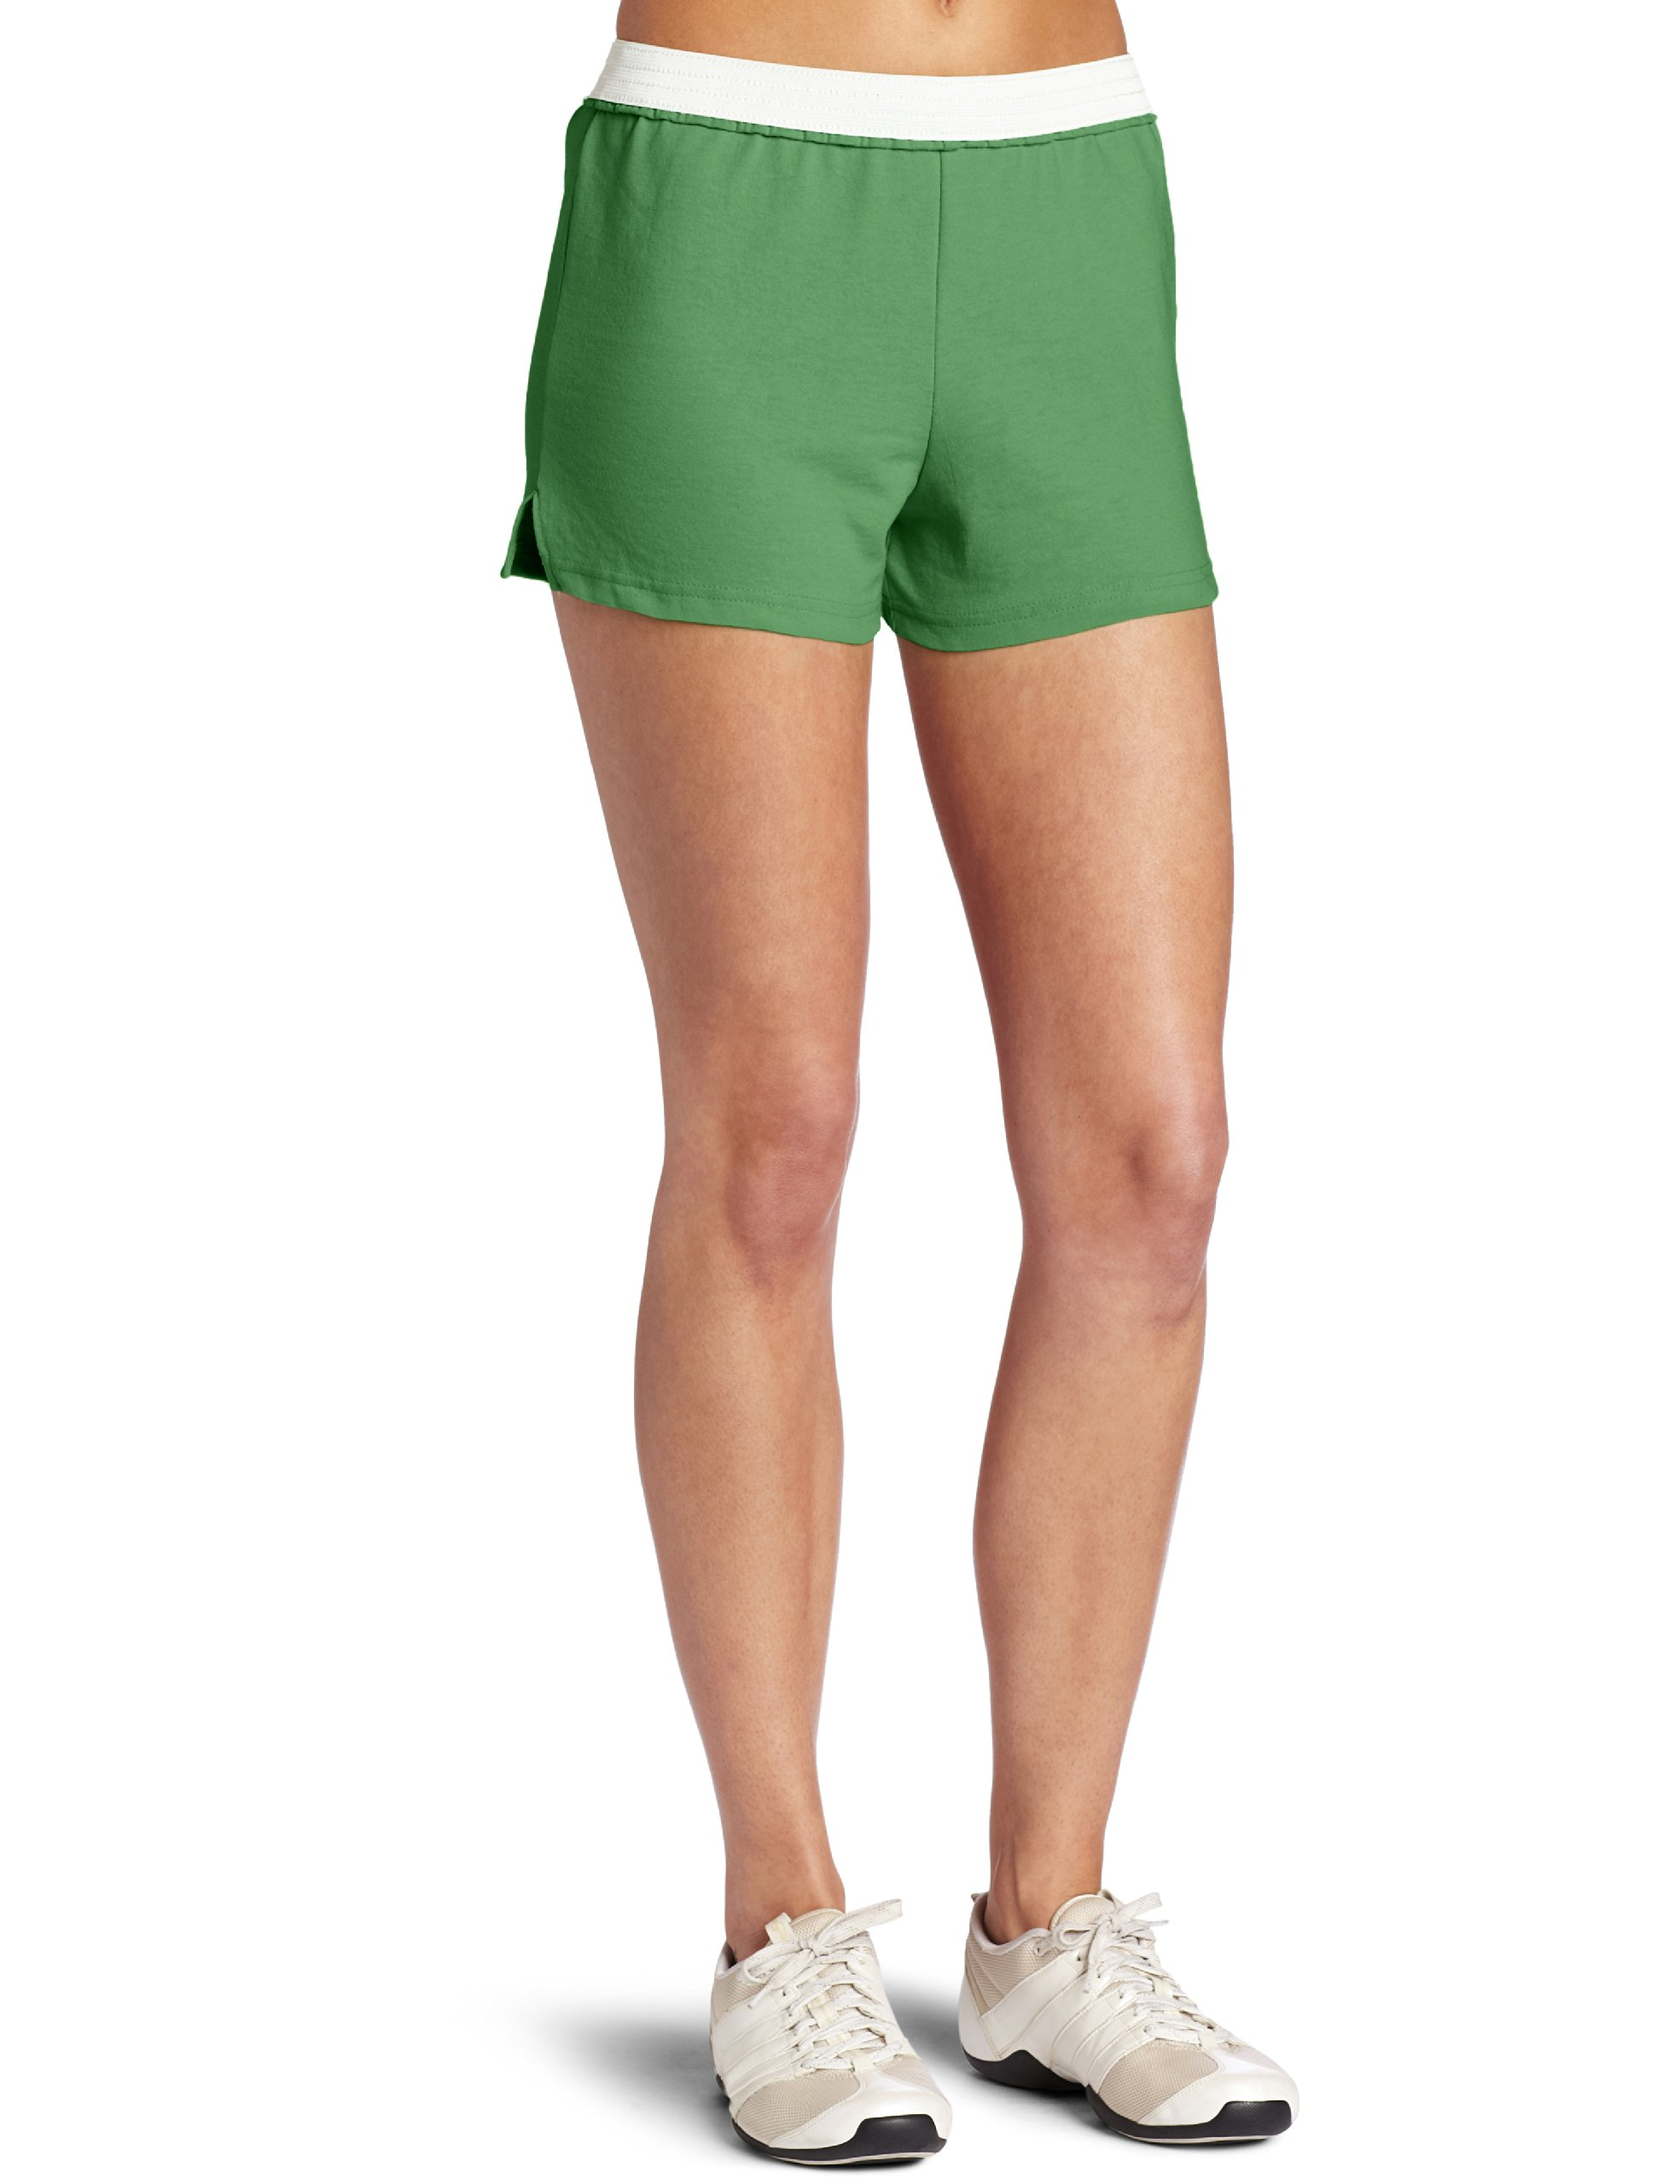 Soffe Youth Girls' Authentic Shorts, Kelly, X-Small